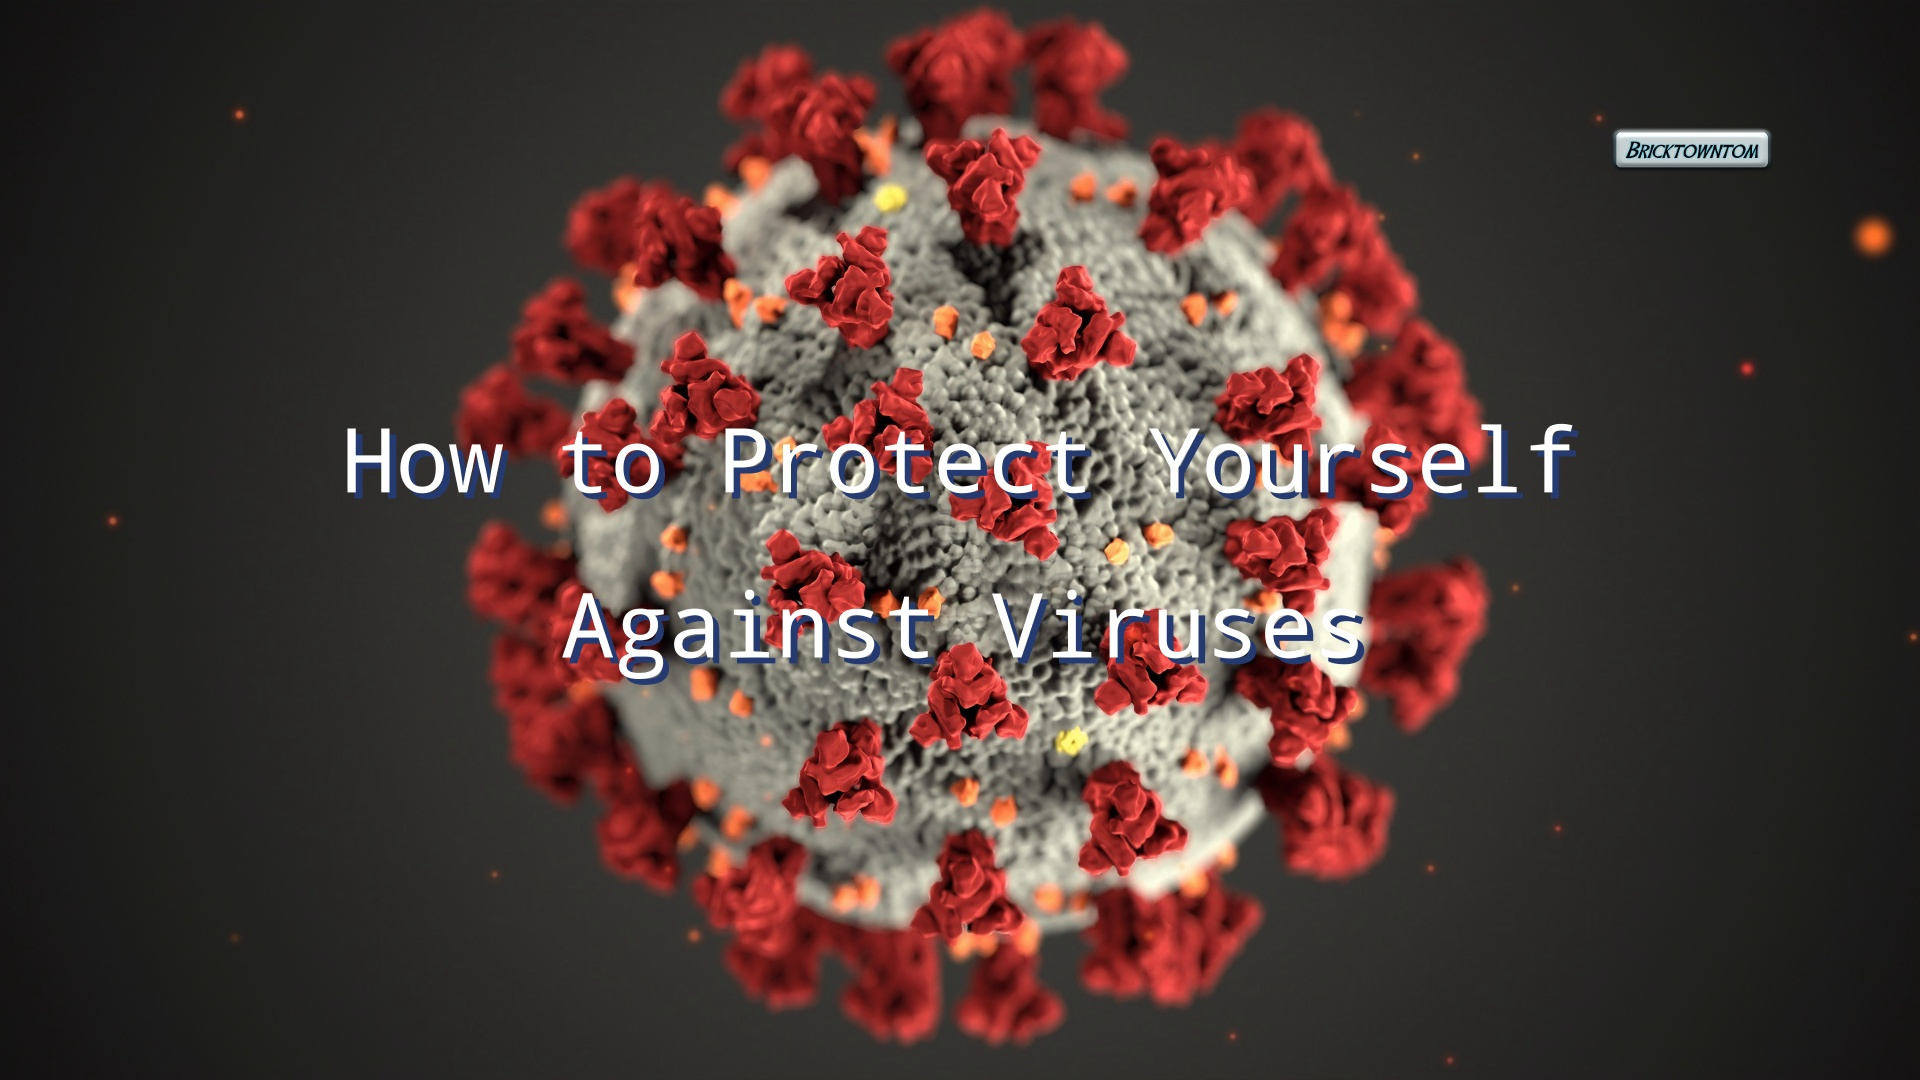 How to Protect Yourself Against Viruses